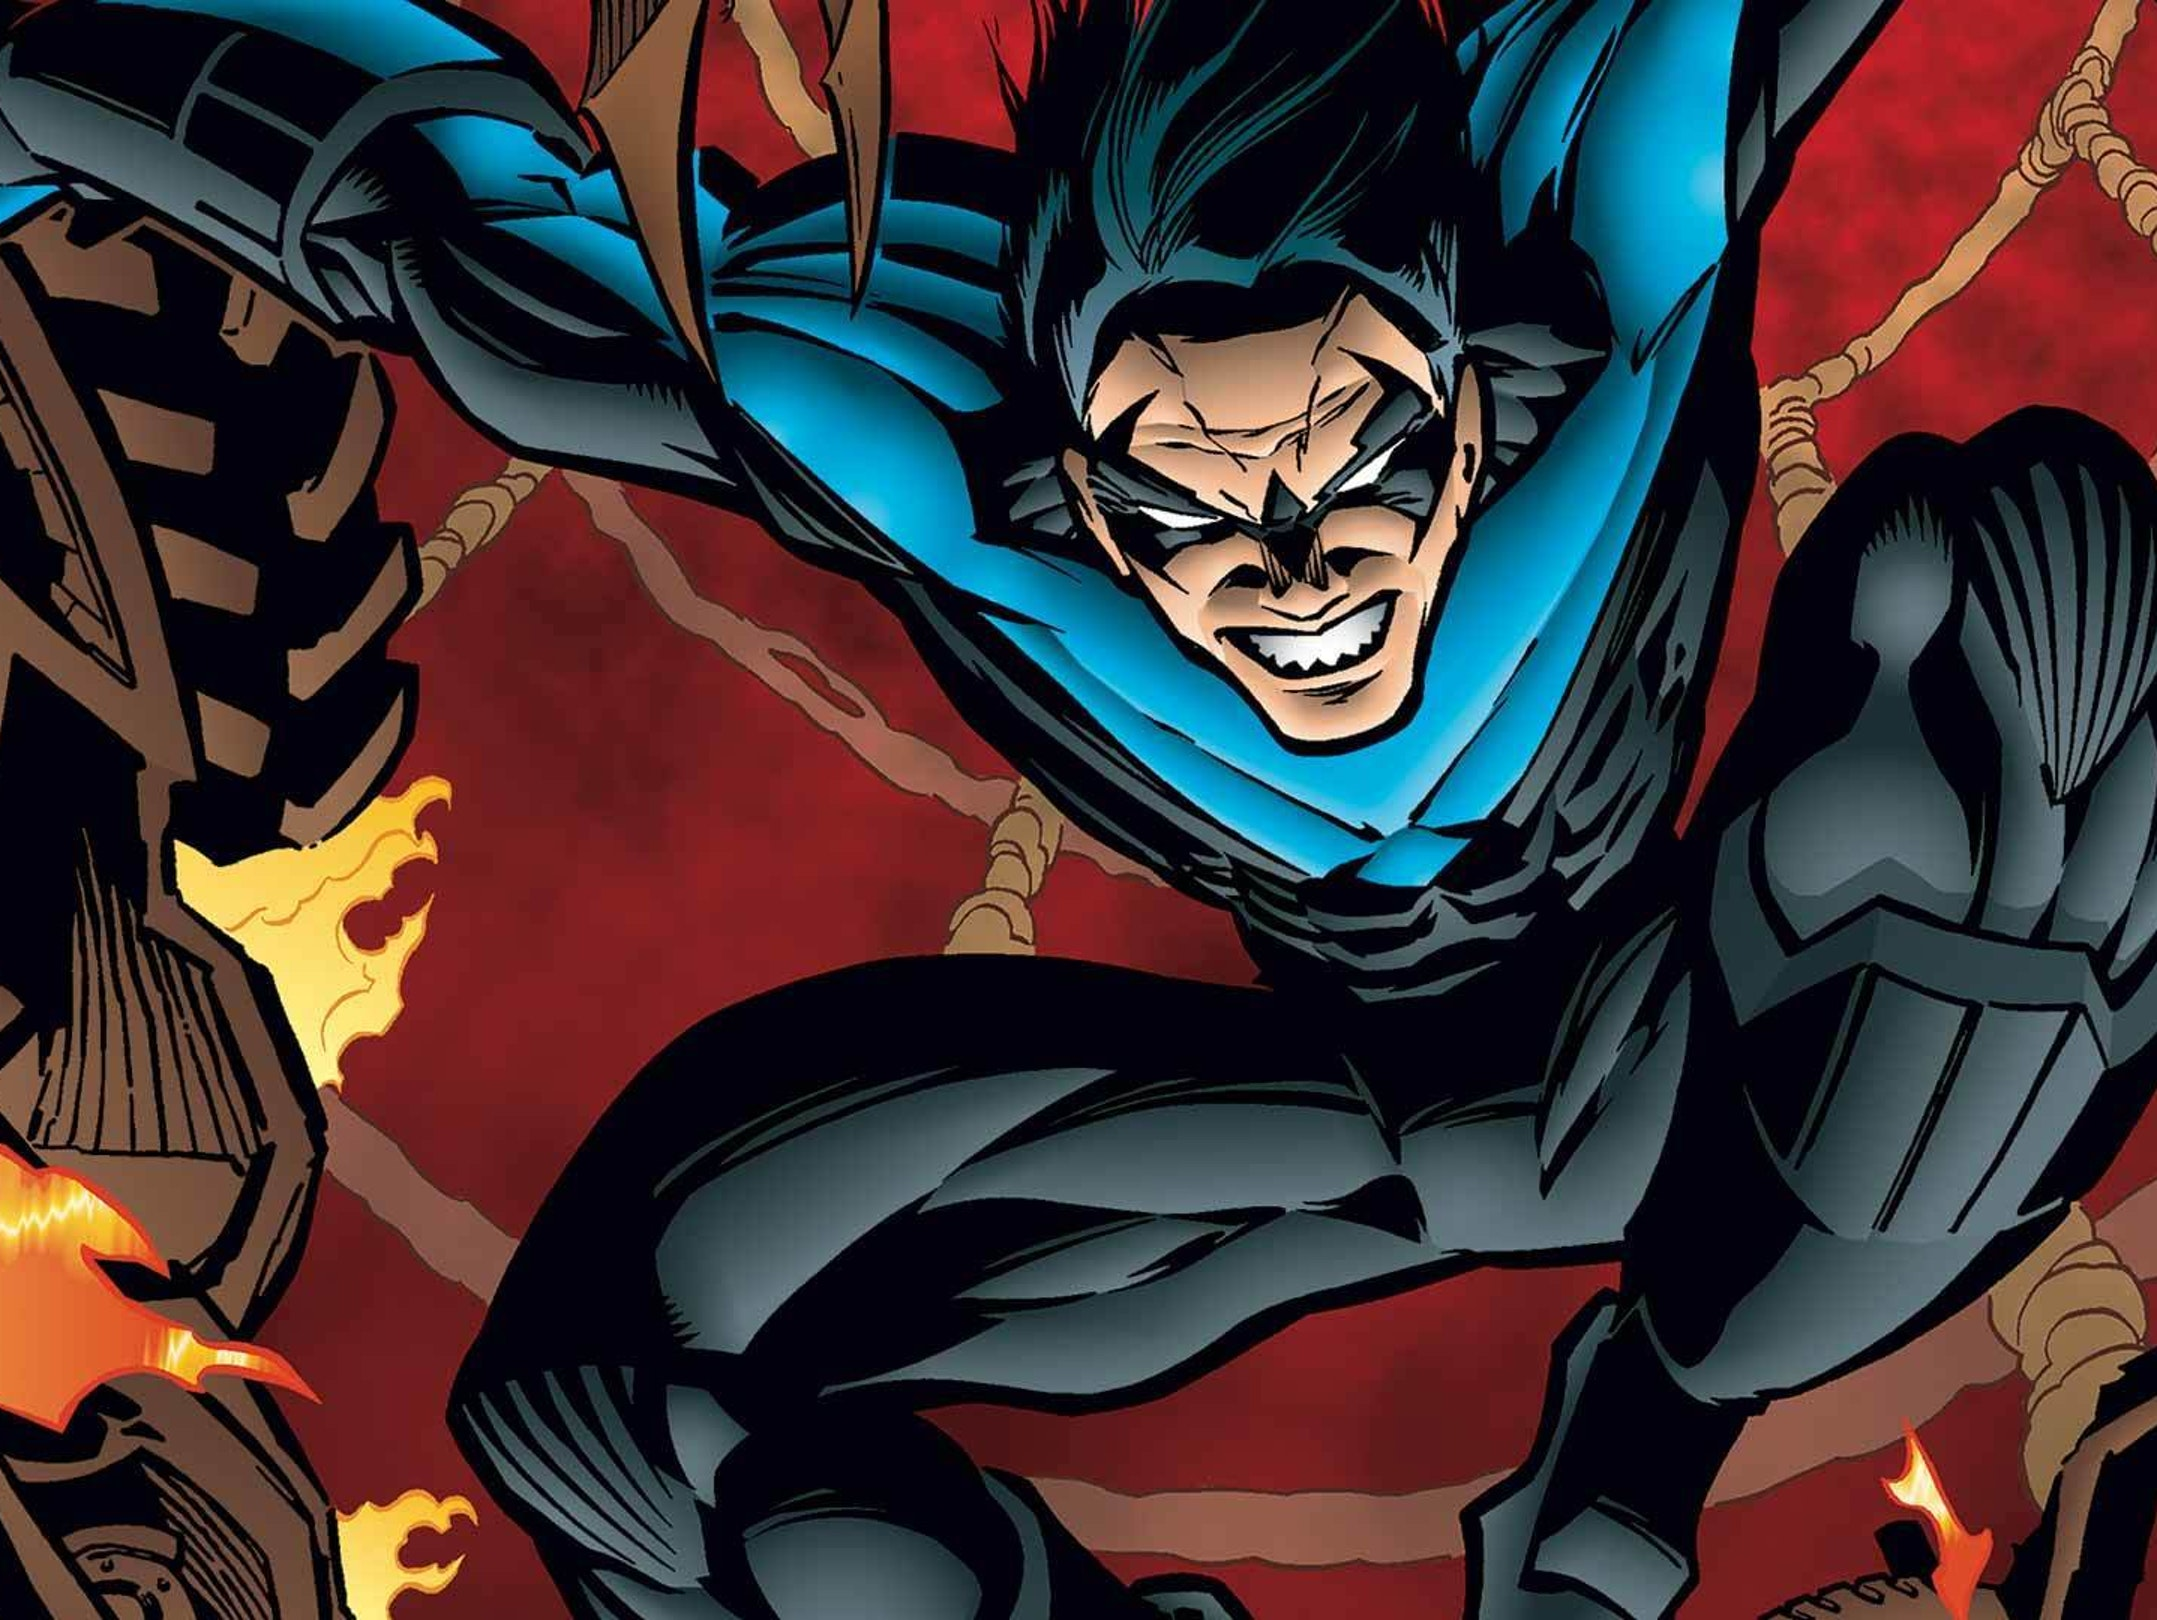 'Lego Batman' Director Lands A DCEU Nightwing Movie